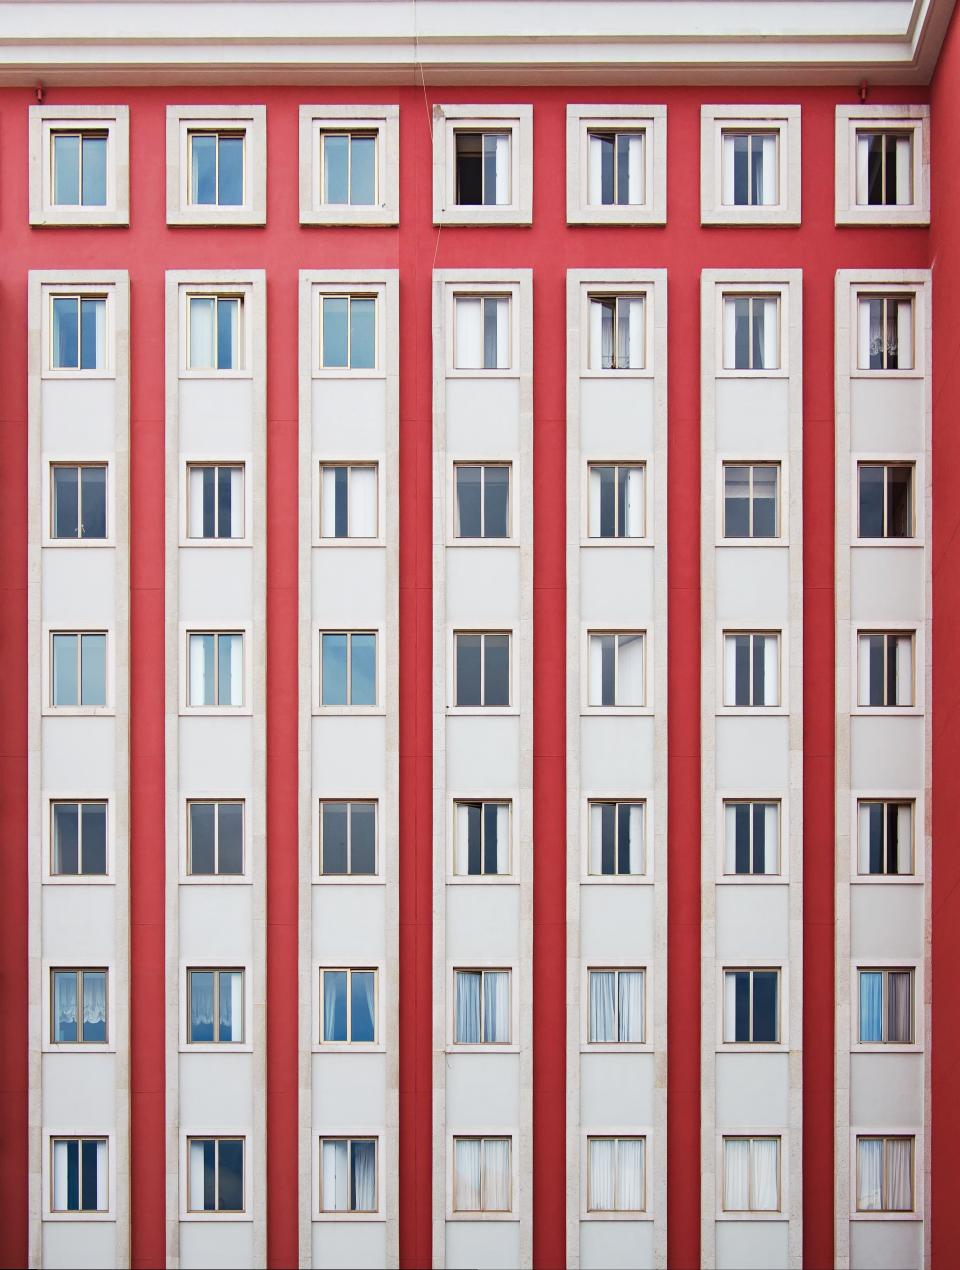 architecture building apartment windows condominium symmetry red wall